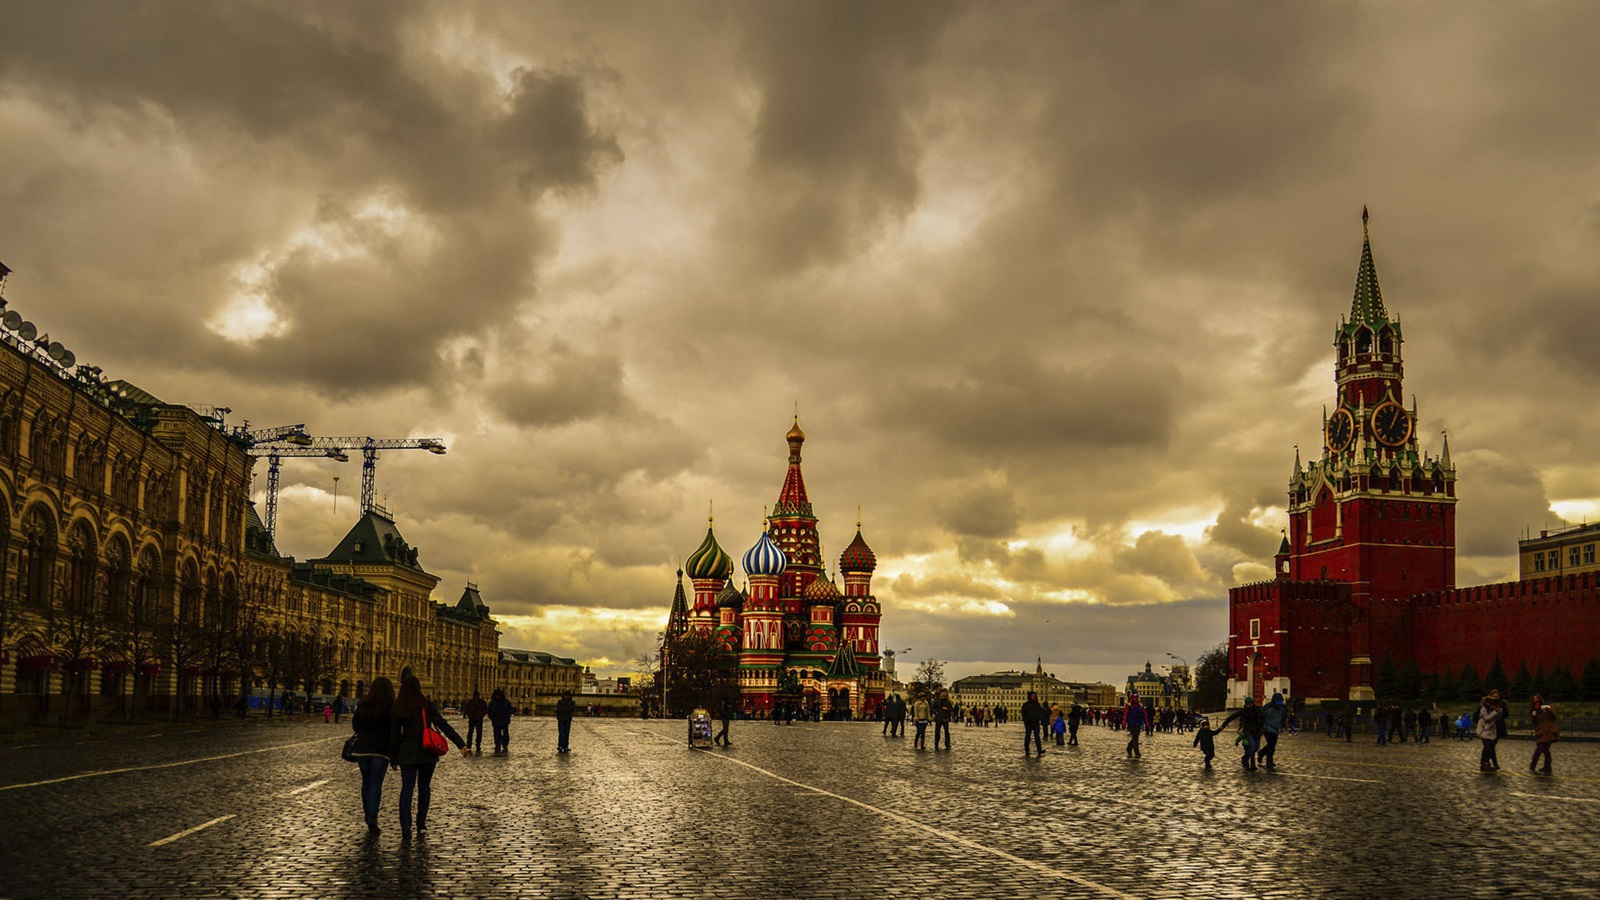 moscow wallpapers high resolution - photo #20